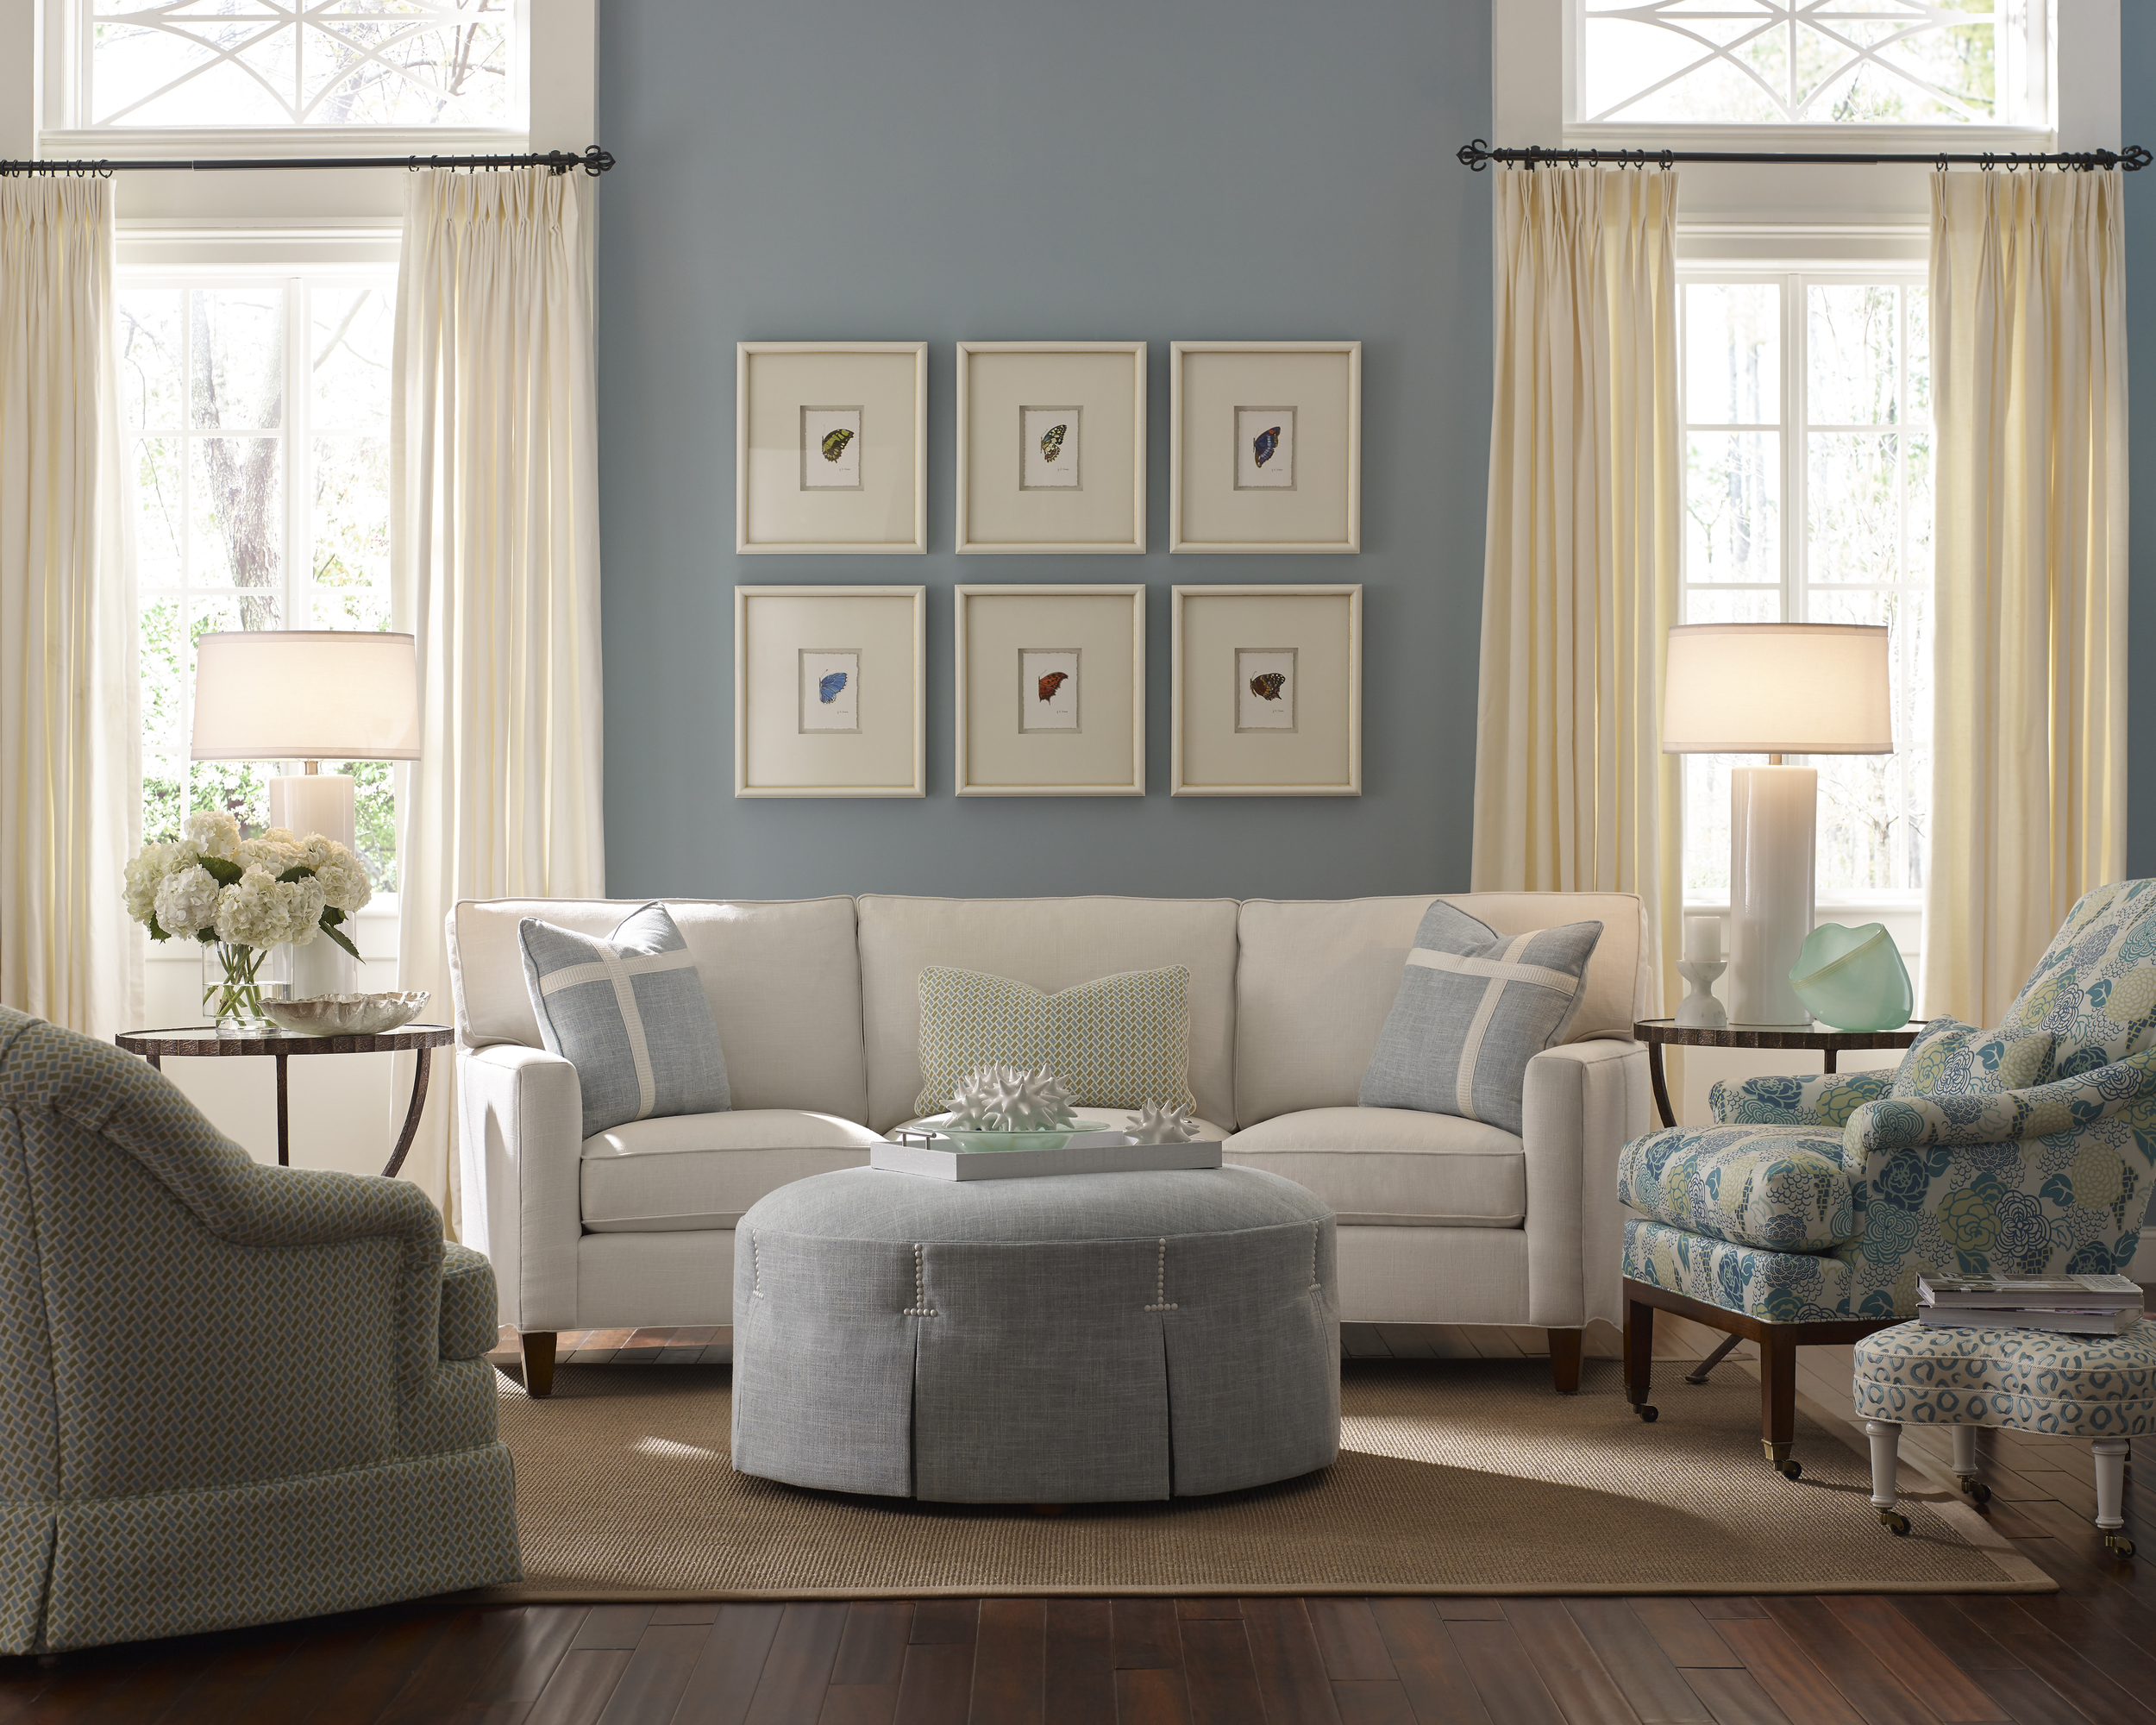 KHB Interiors Day of Design New Orleans Interior Design Taylor King Cozy Creations